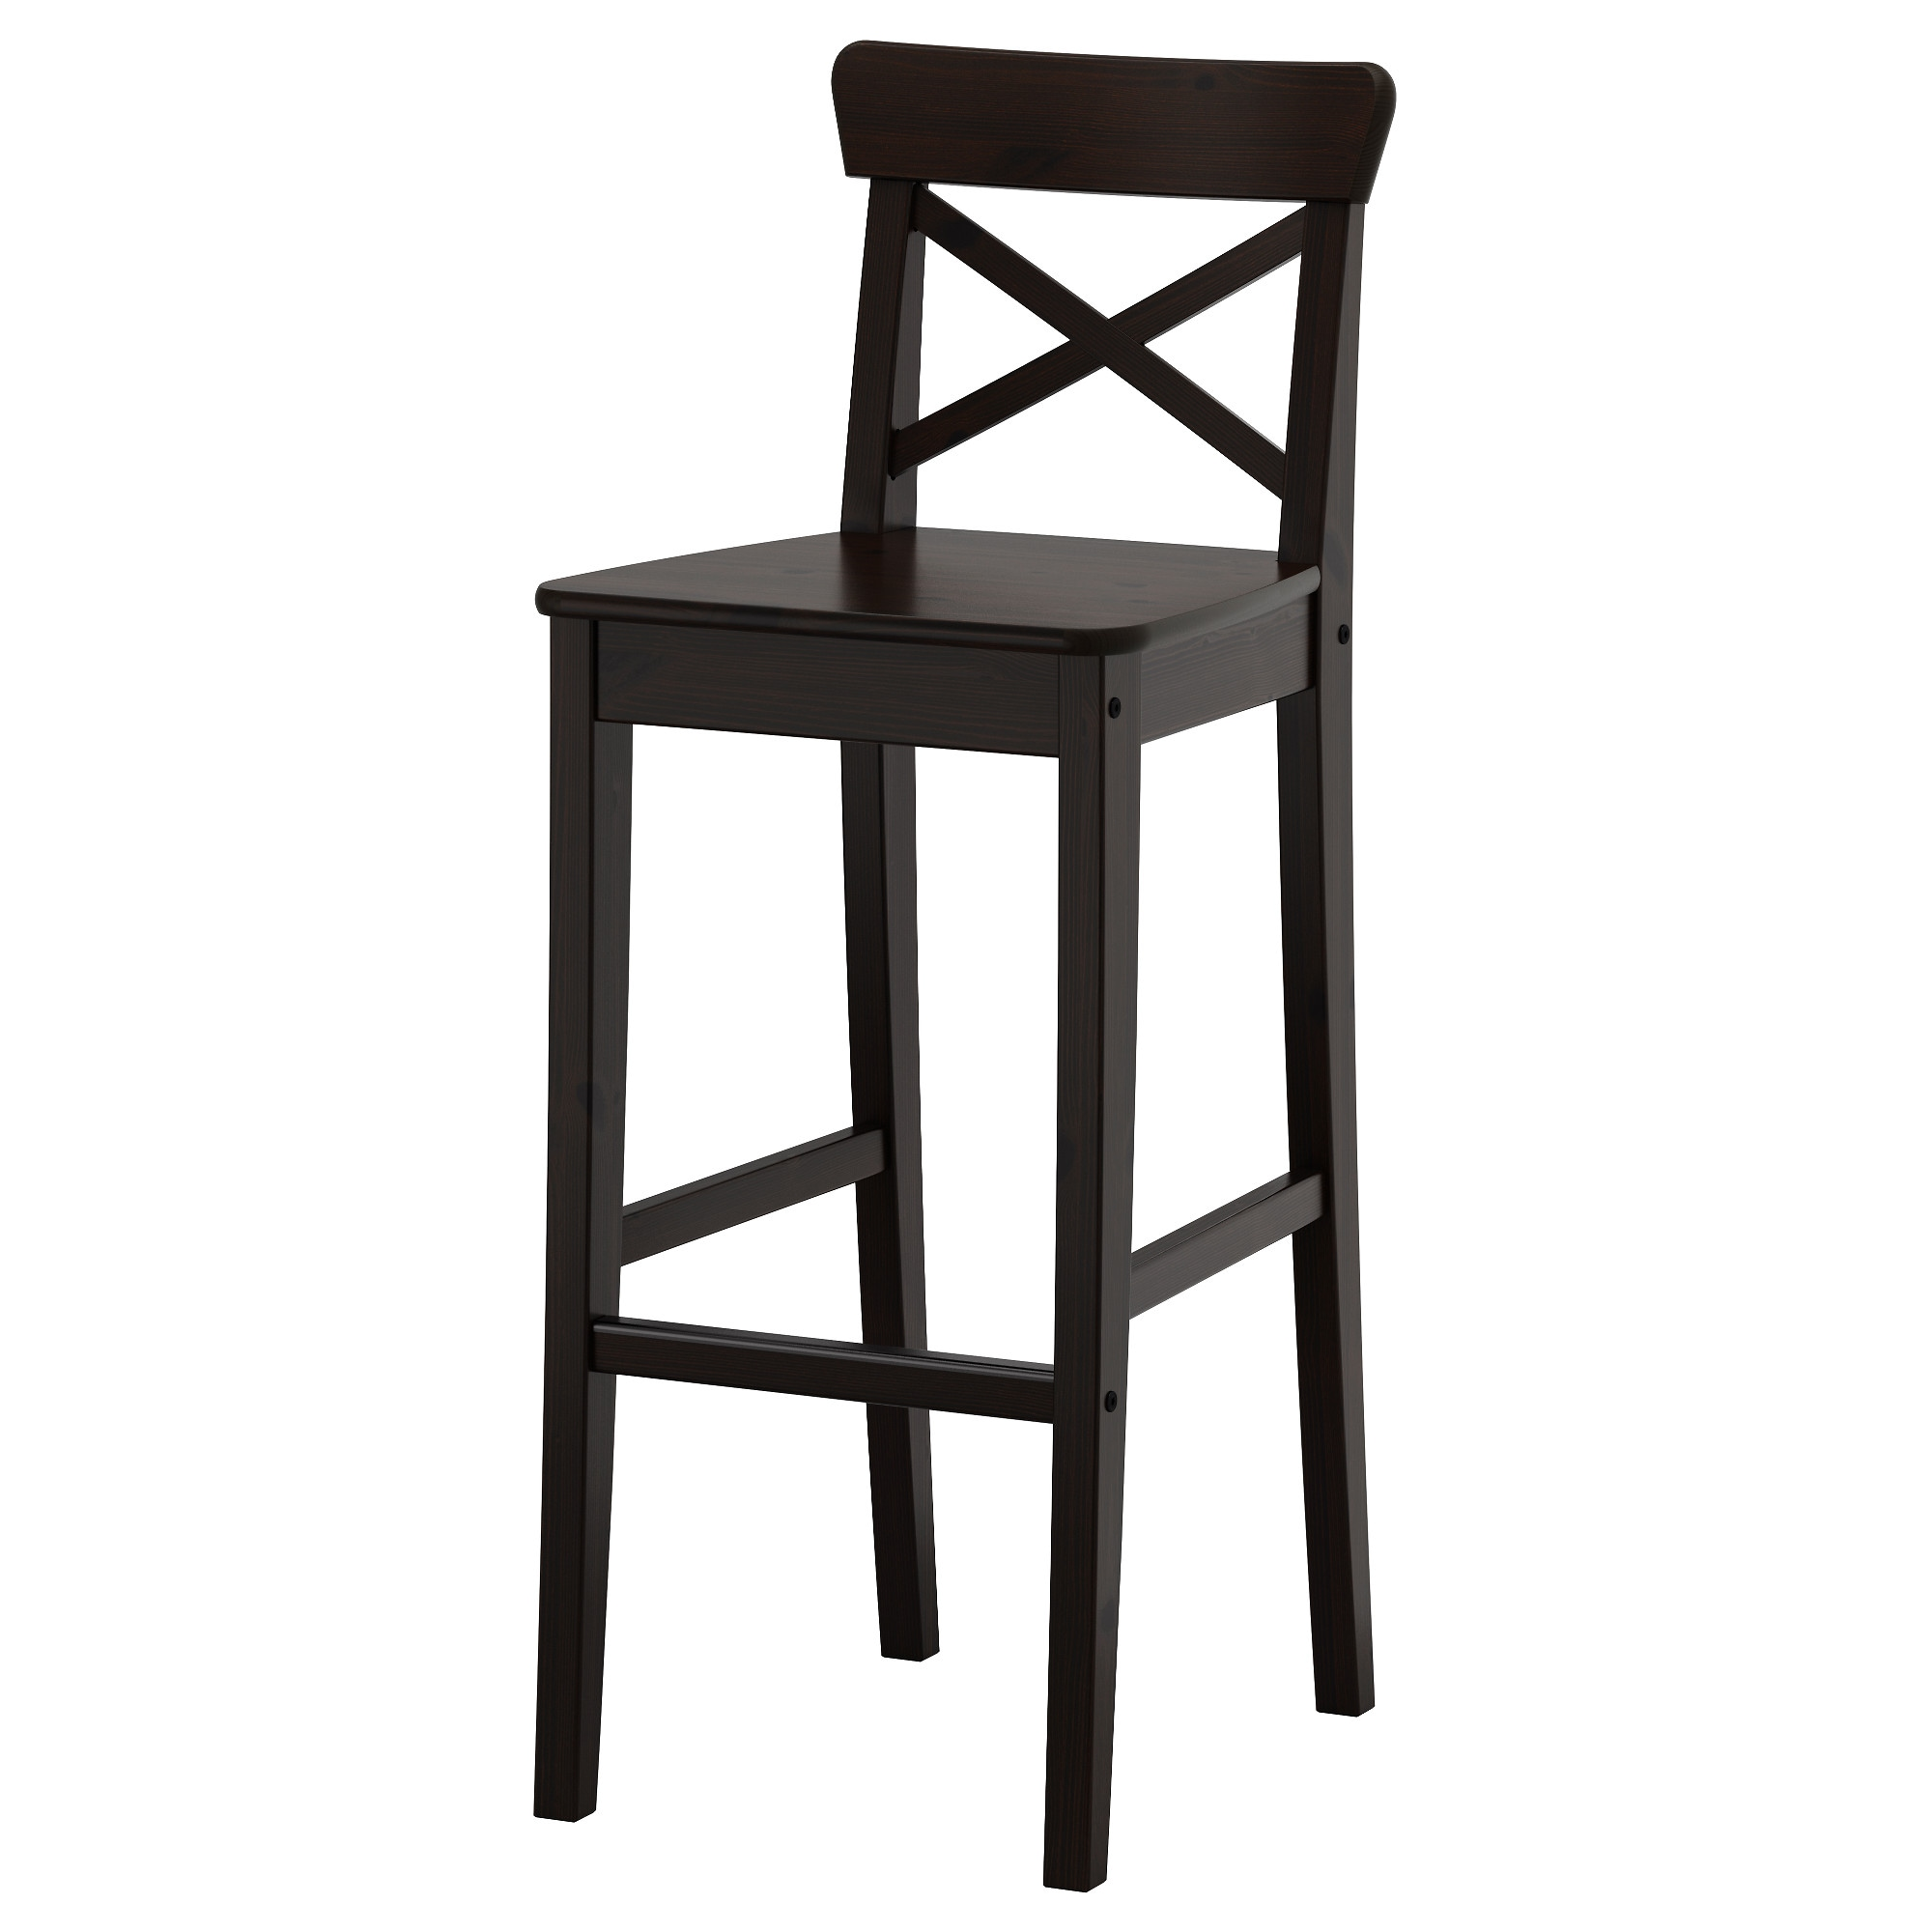 ingolf bar stool with backrest - ikea